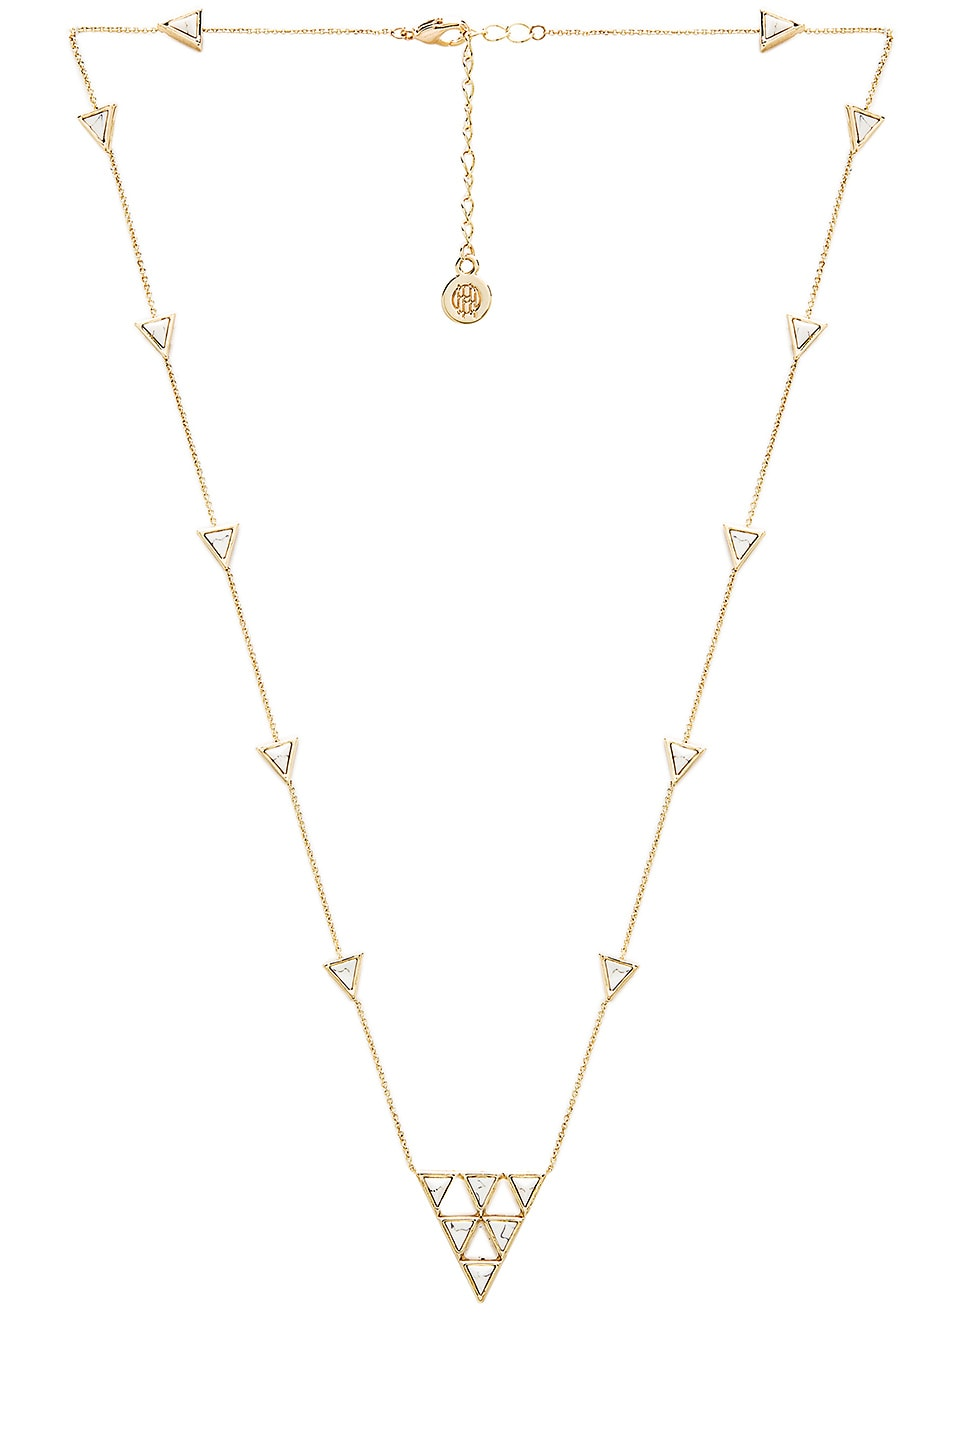 House of Harlow 1960 House of Harlow Triangle Trellis Necklace in Gold